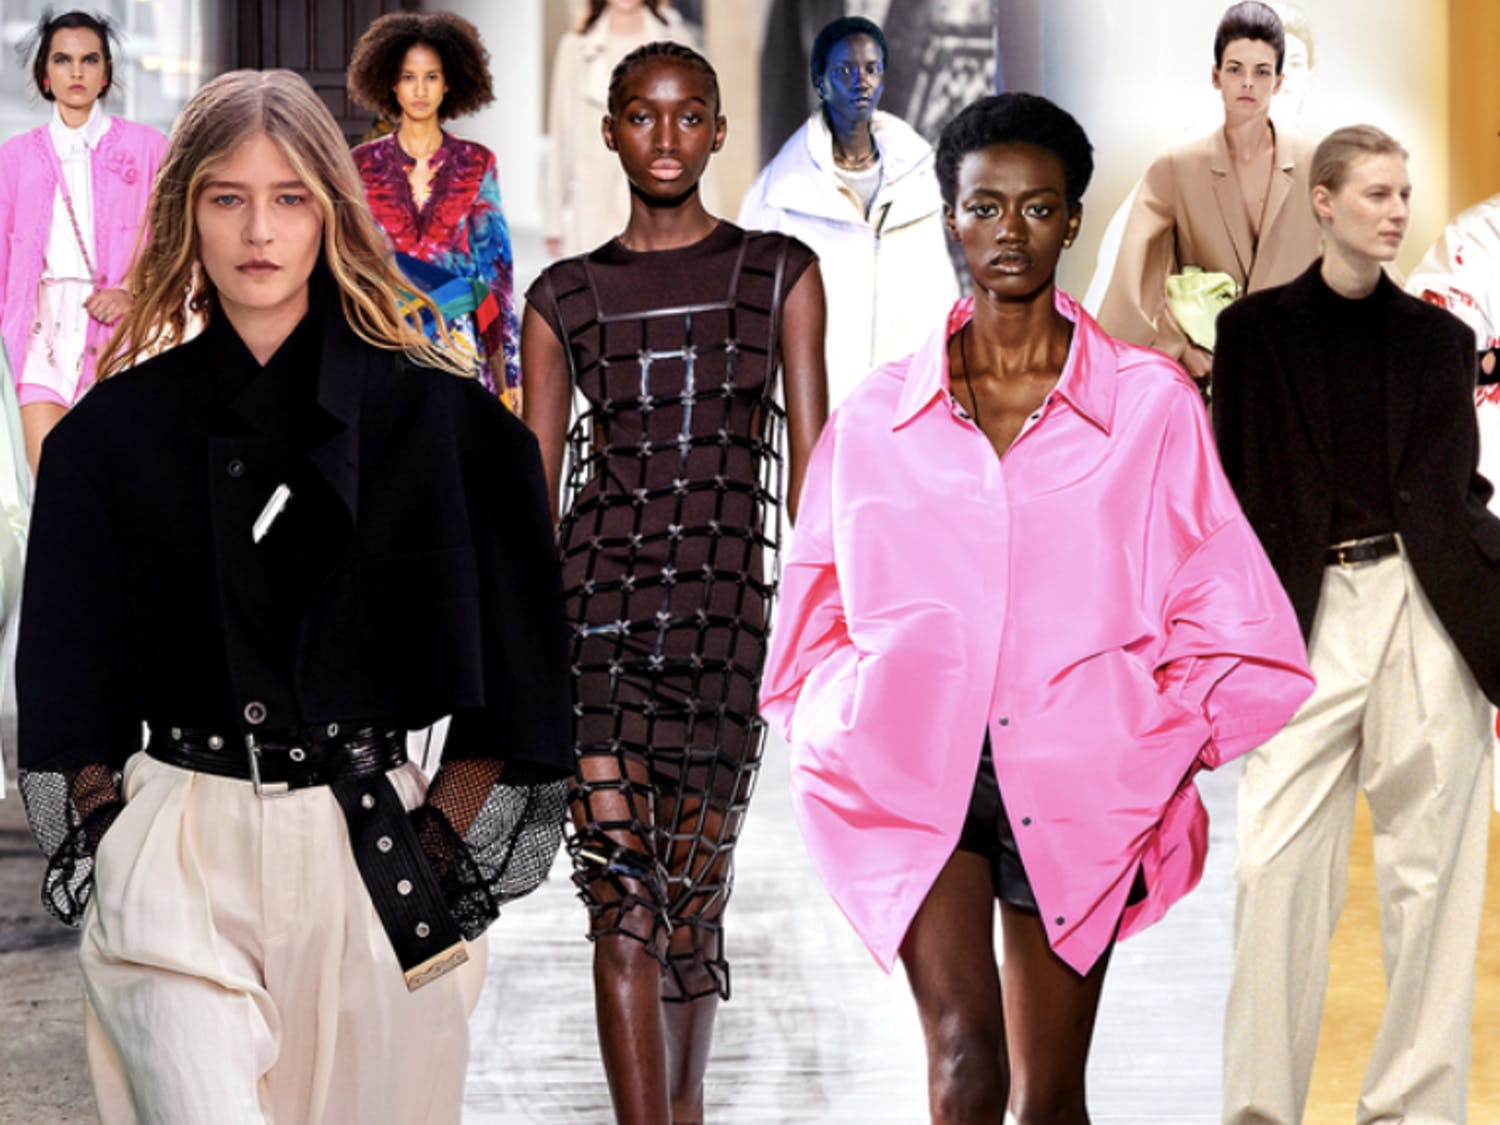 With this summer promising to be more exciting and sociable than the last, fashion is catching up on missing time with new bold trends.